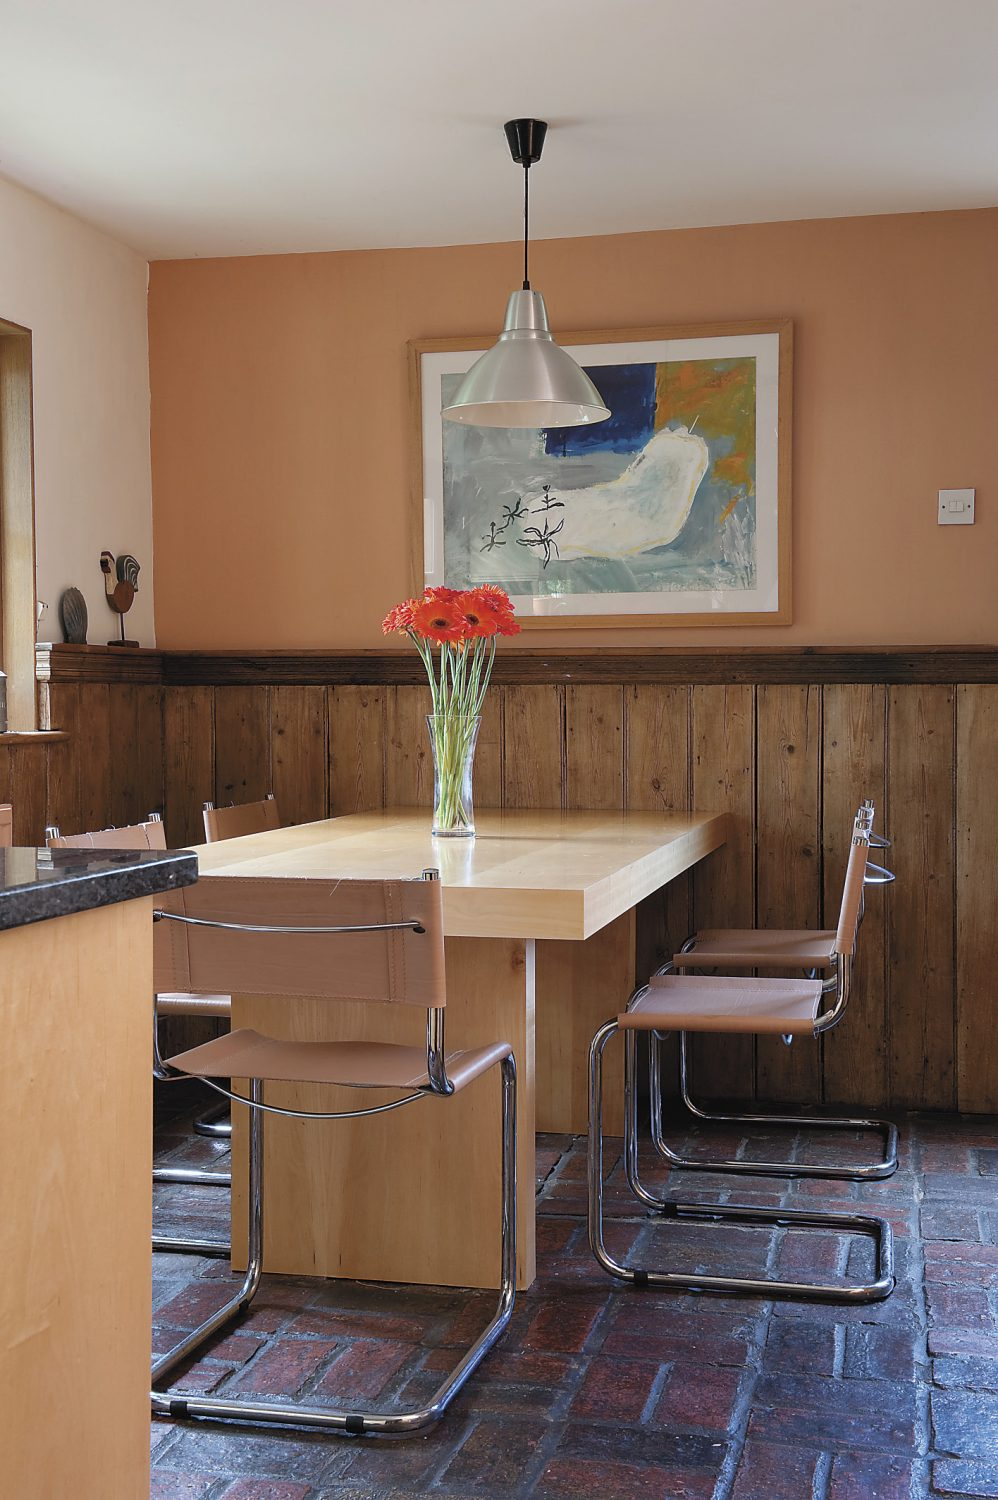 art is a key feature in the home – this piece above the dining table was painted by a college colleague of Barry's